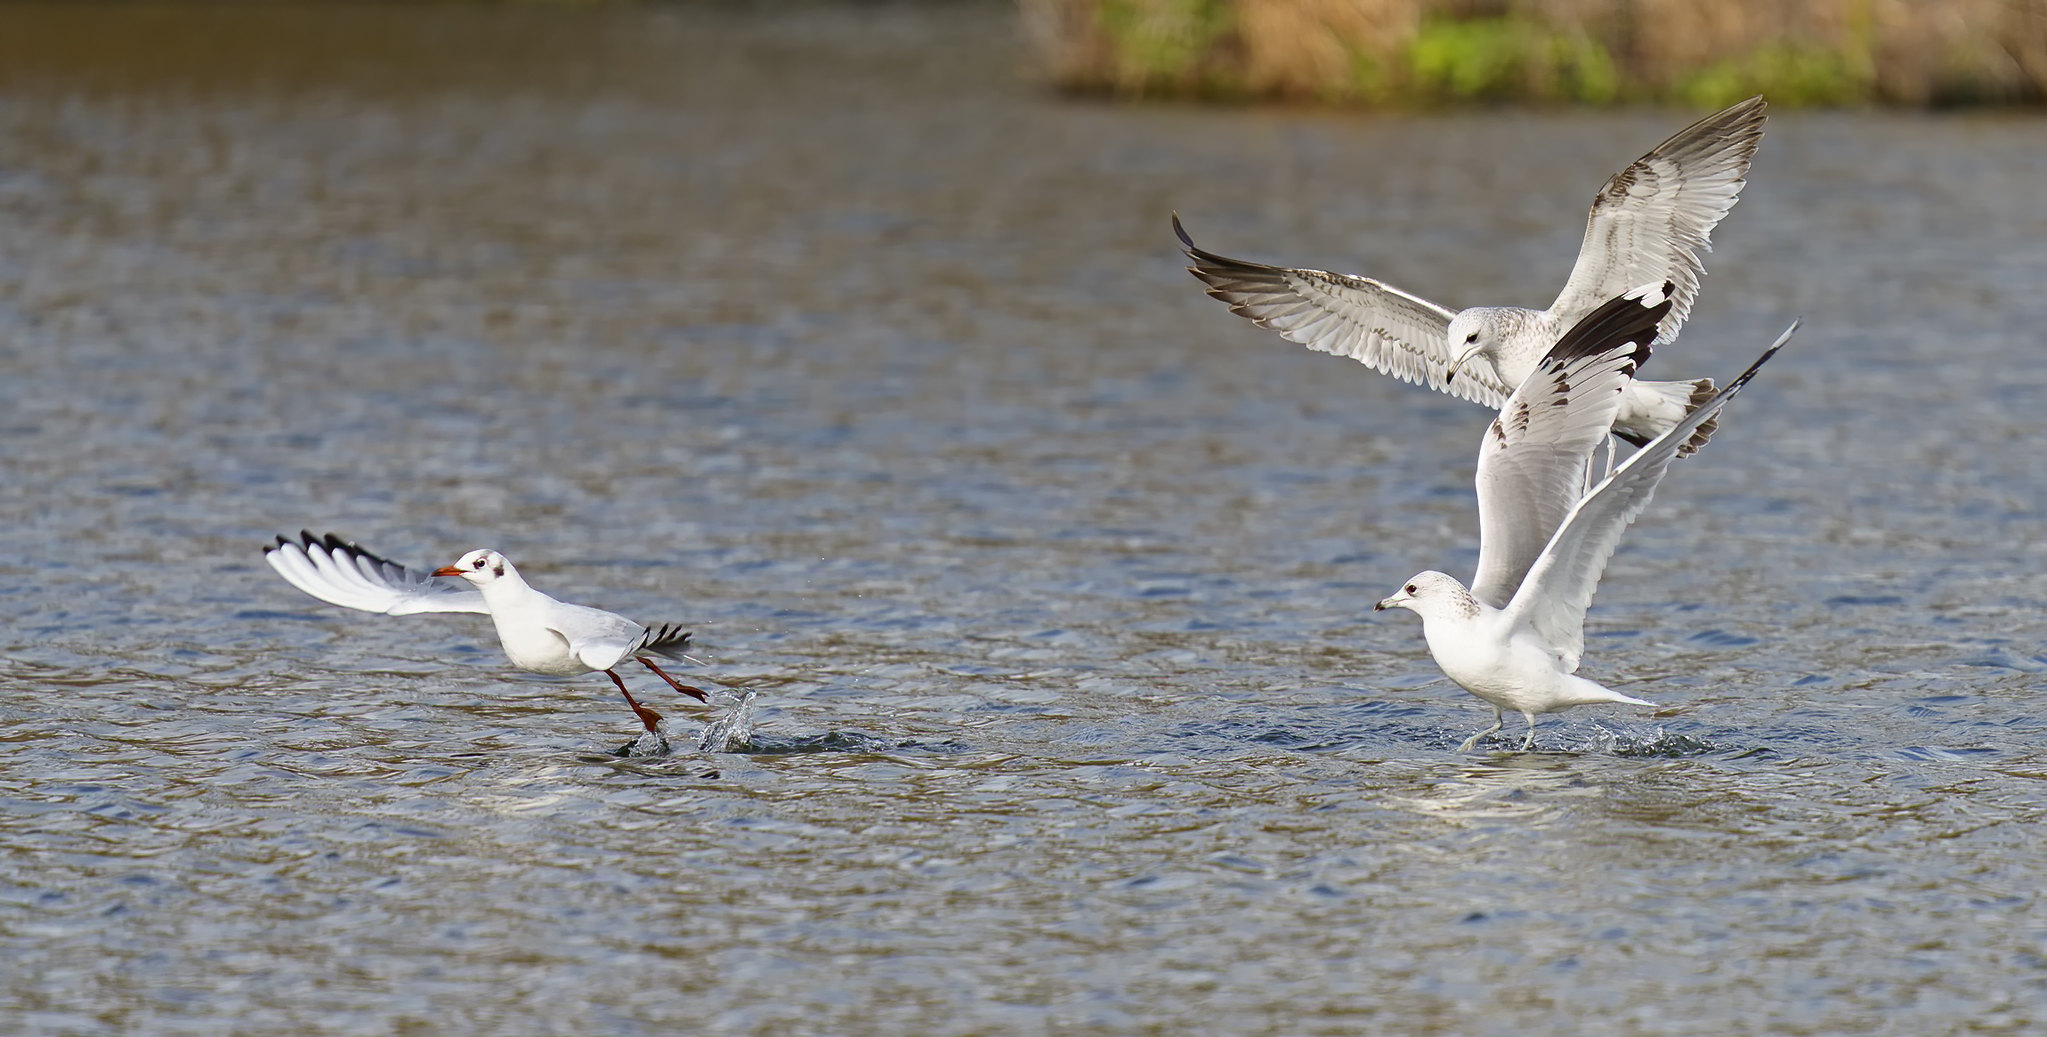 Common Gull and Black-headed Gull